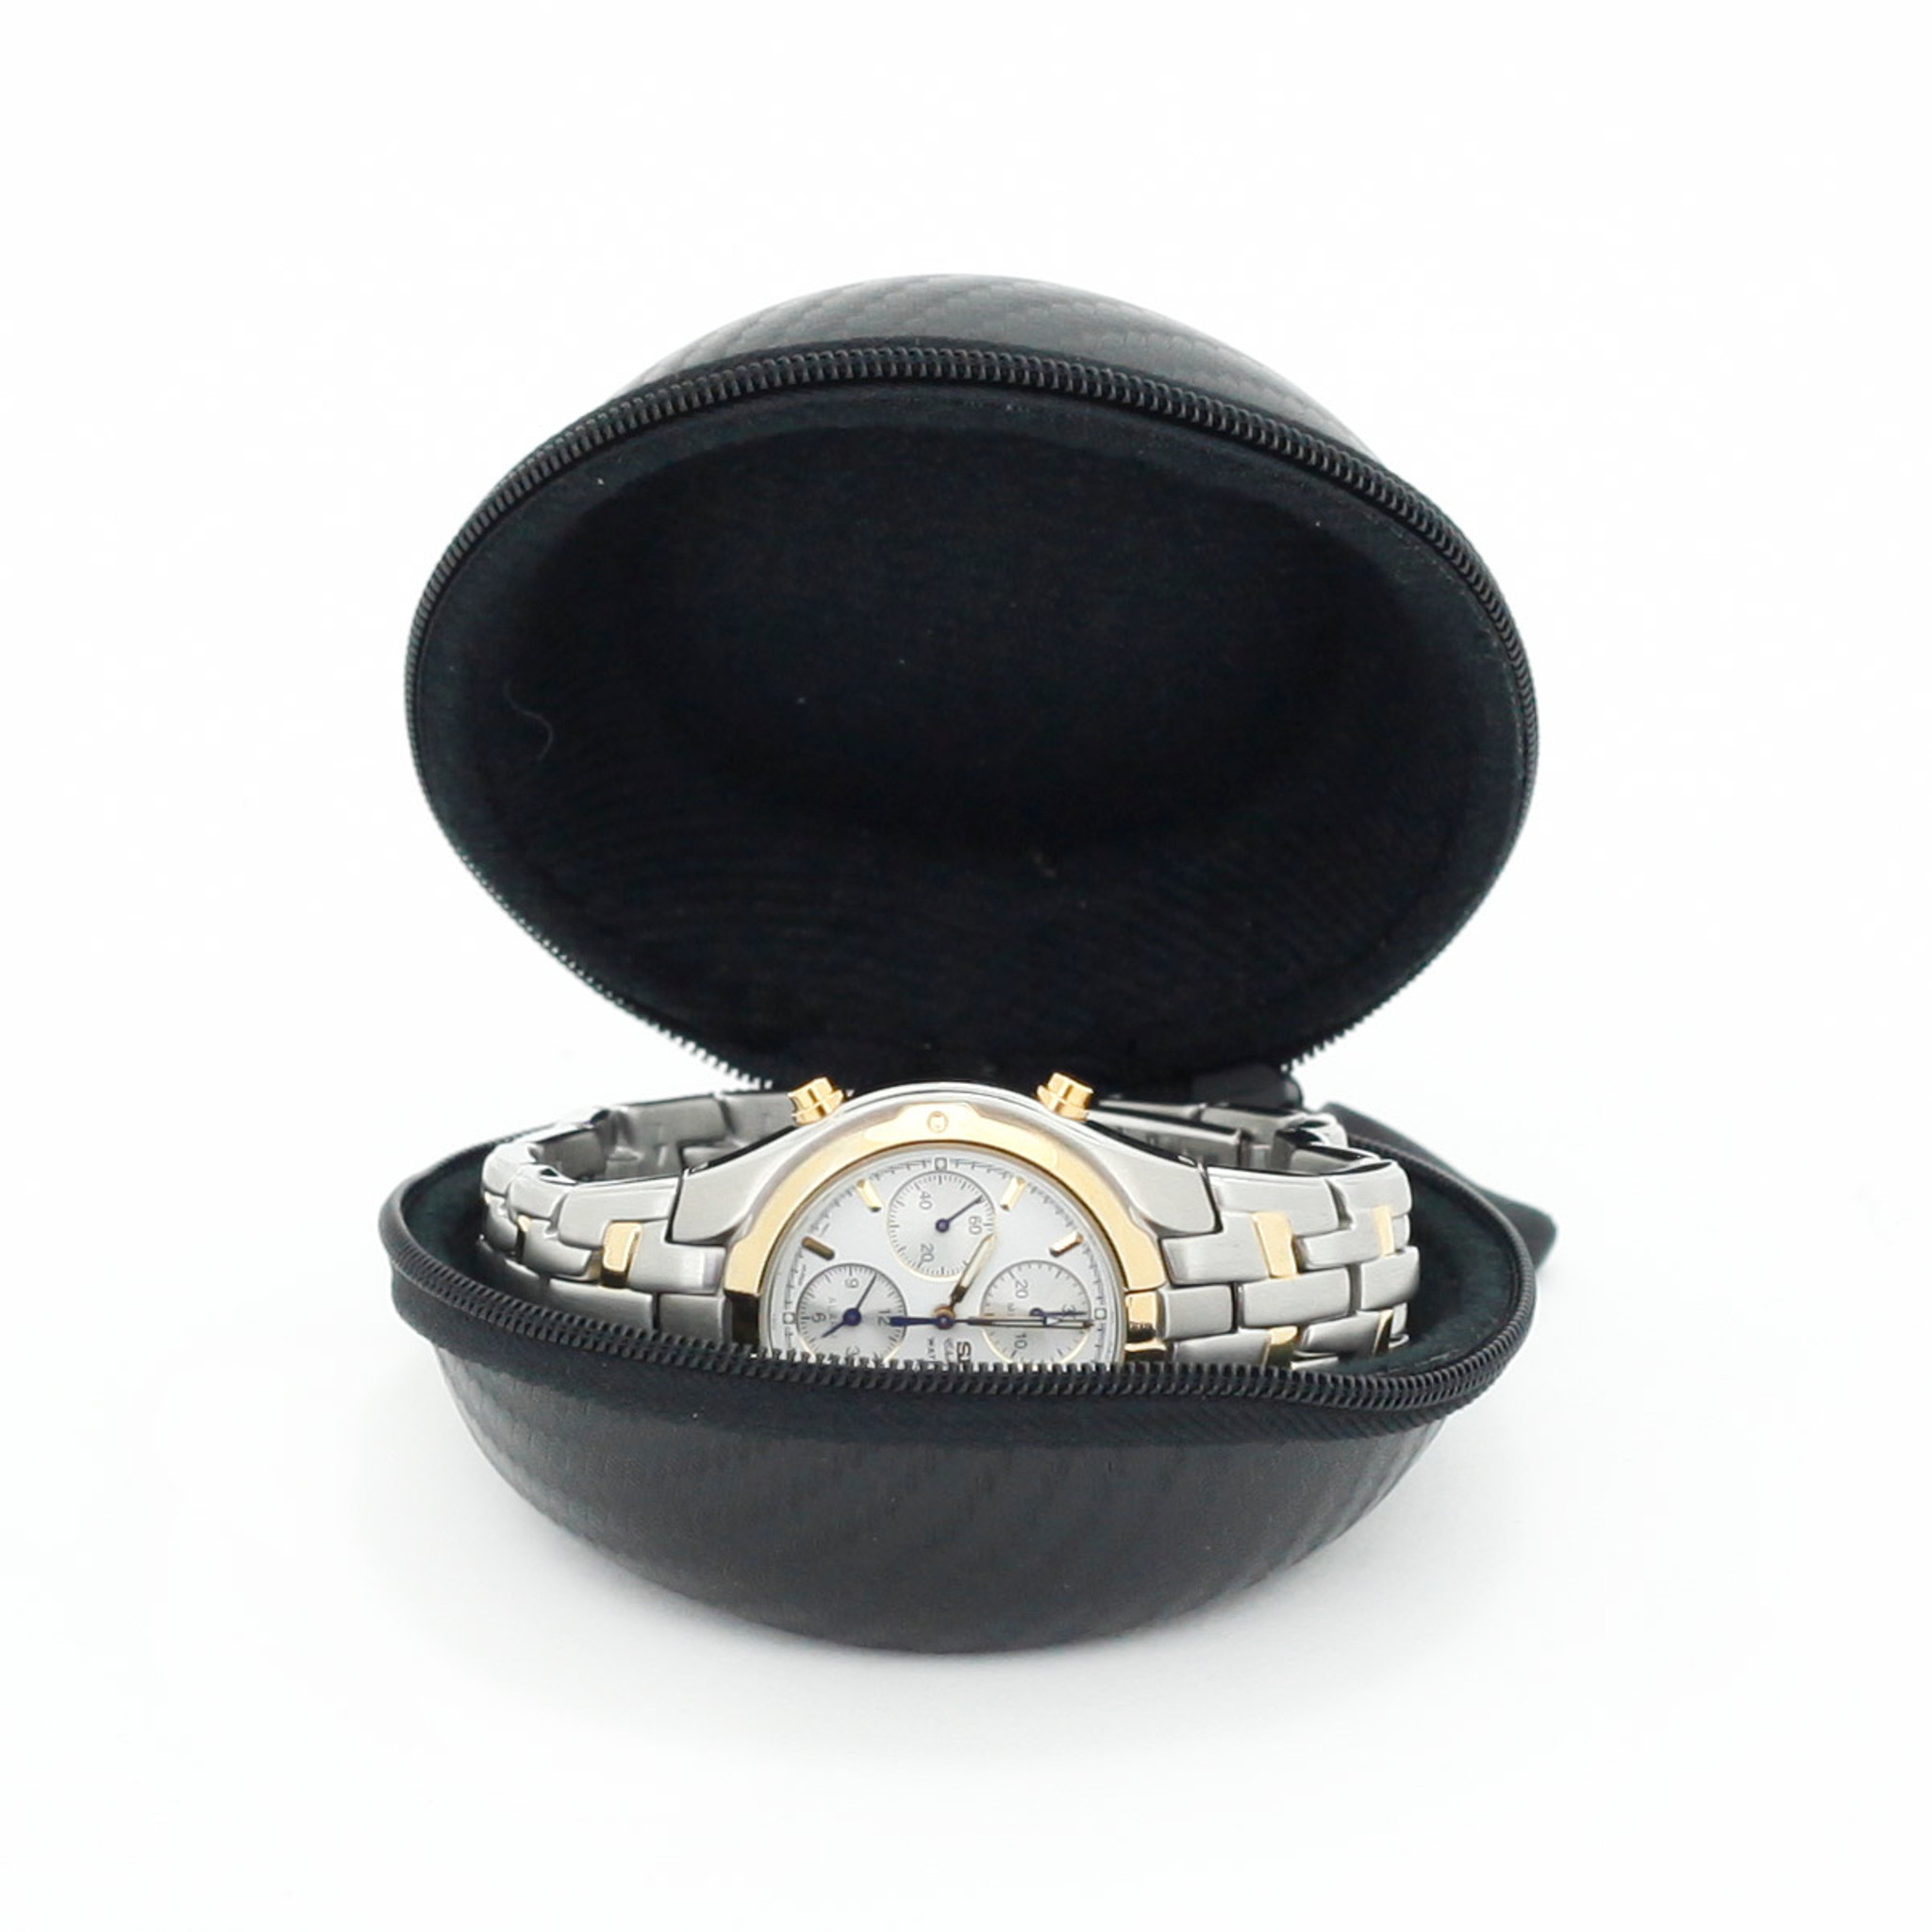 Single Travel Watch Carrying Case